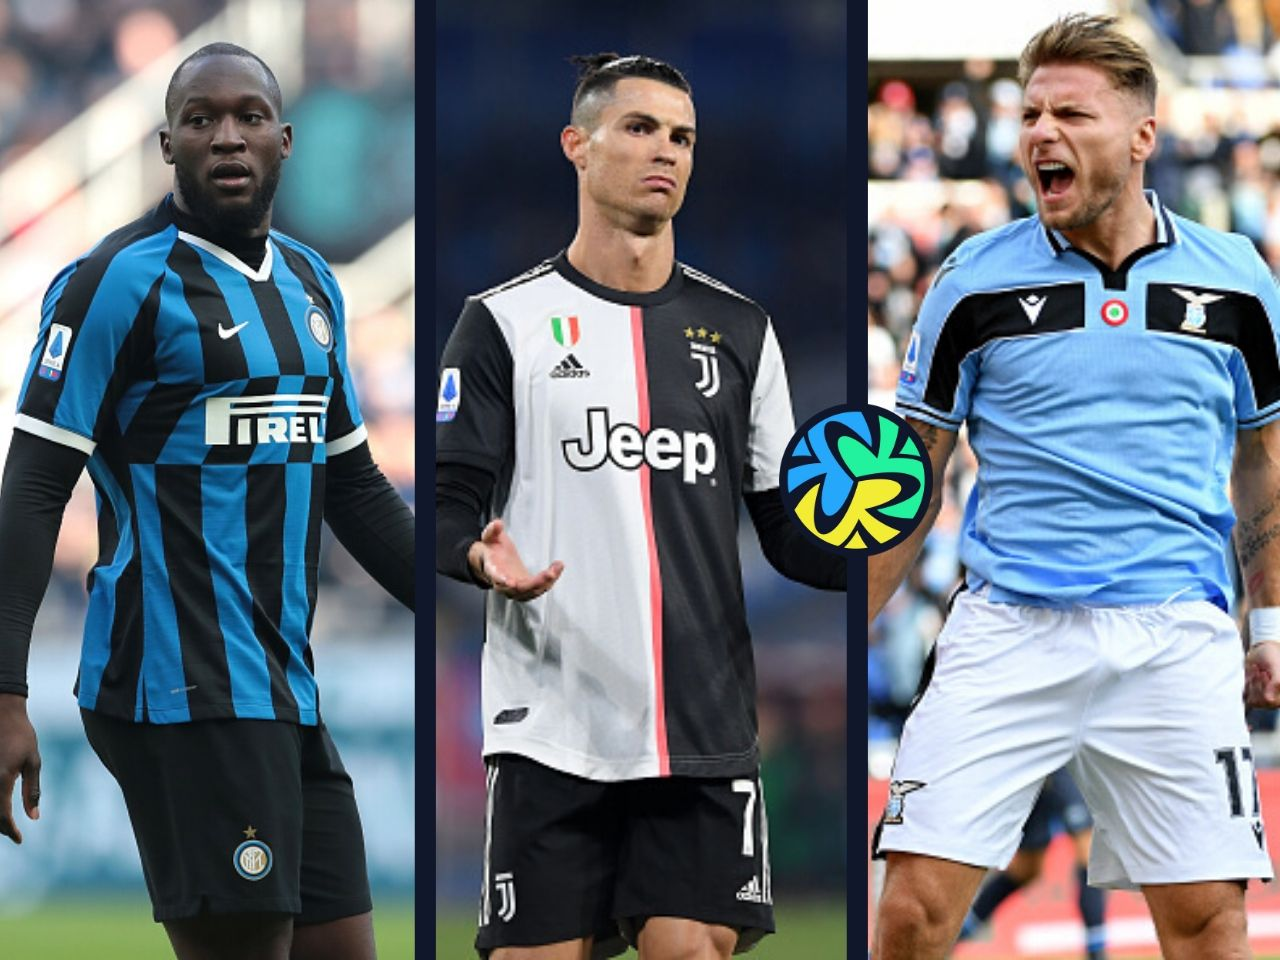 best Serie A players